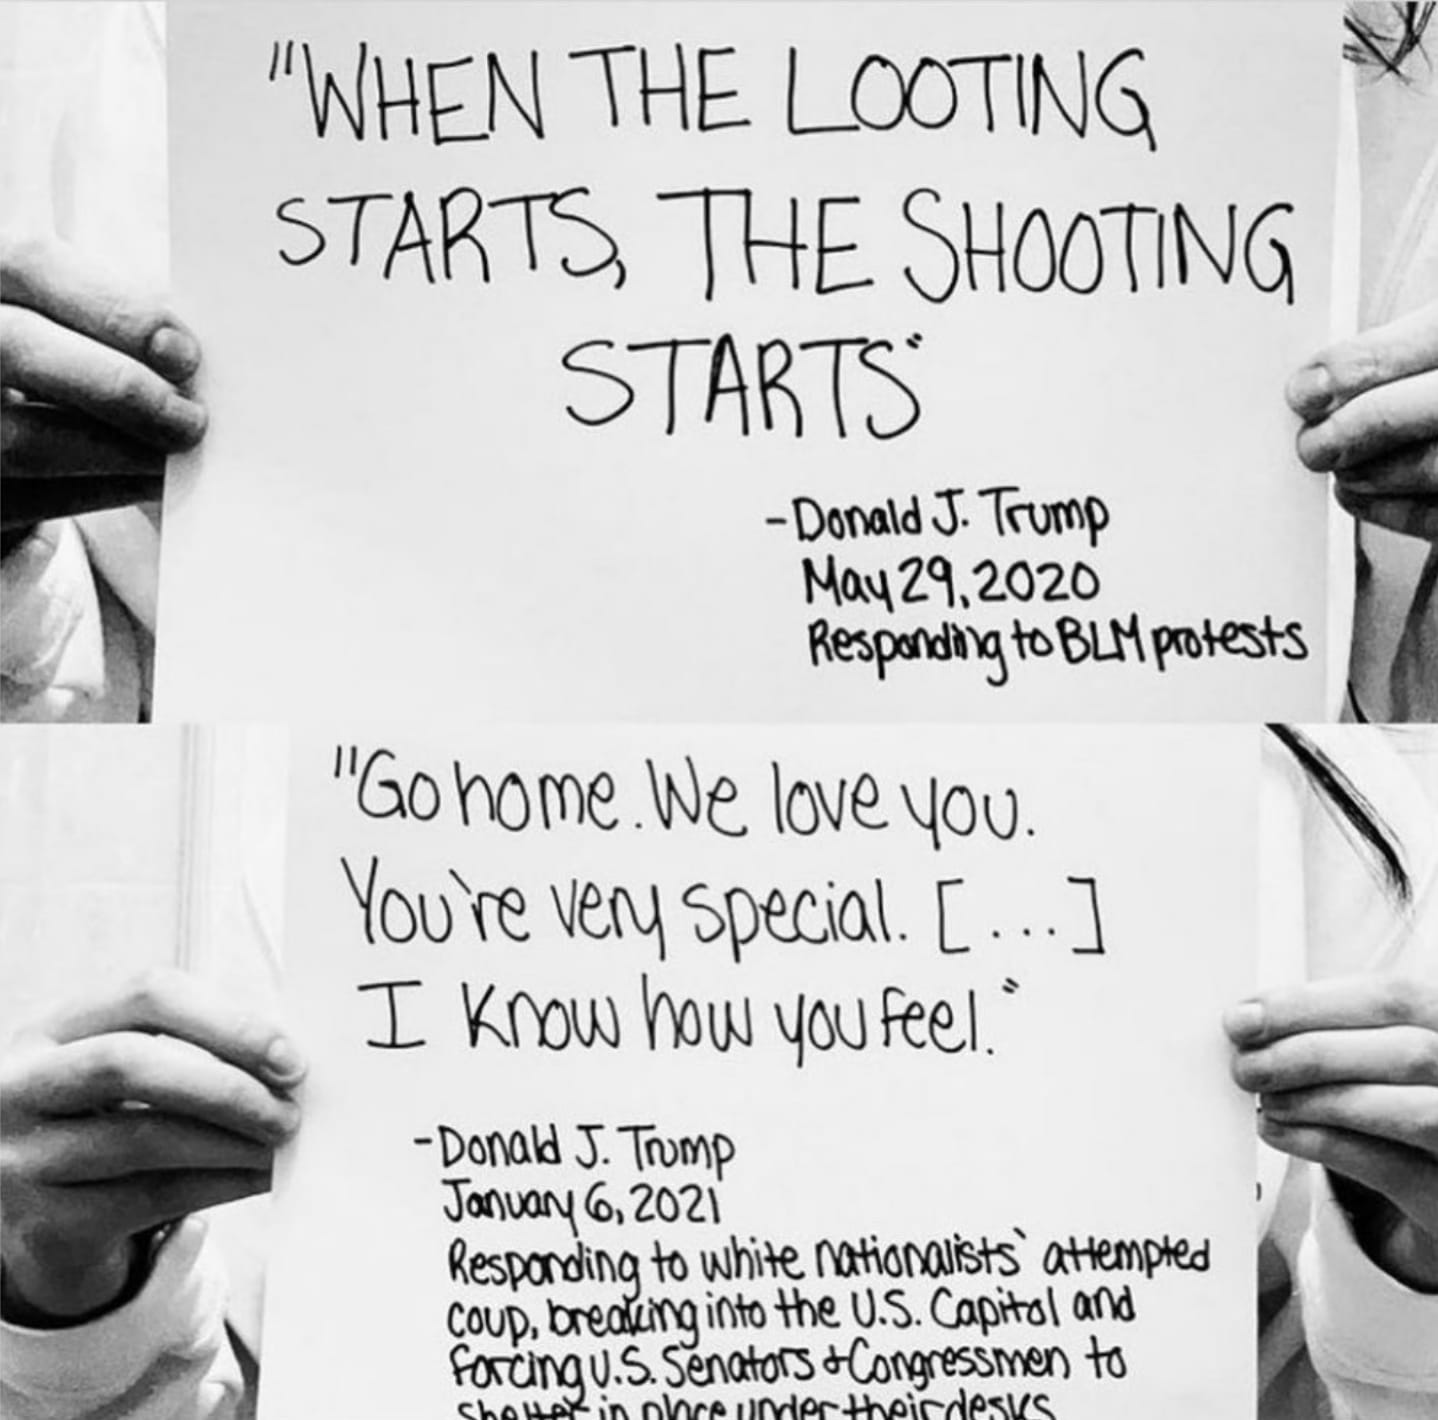 when the looting starts, the shooting starts, go home we love you, you're very special, i know how you feel, donald j trump responding to blm protests and white nationalists' attempted coup